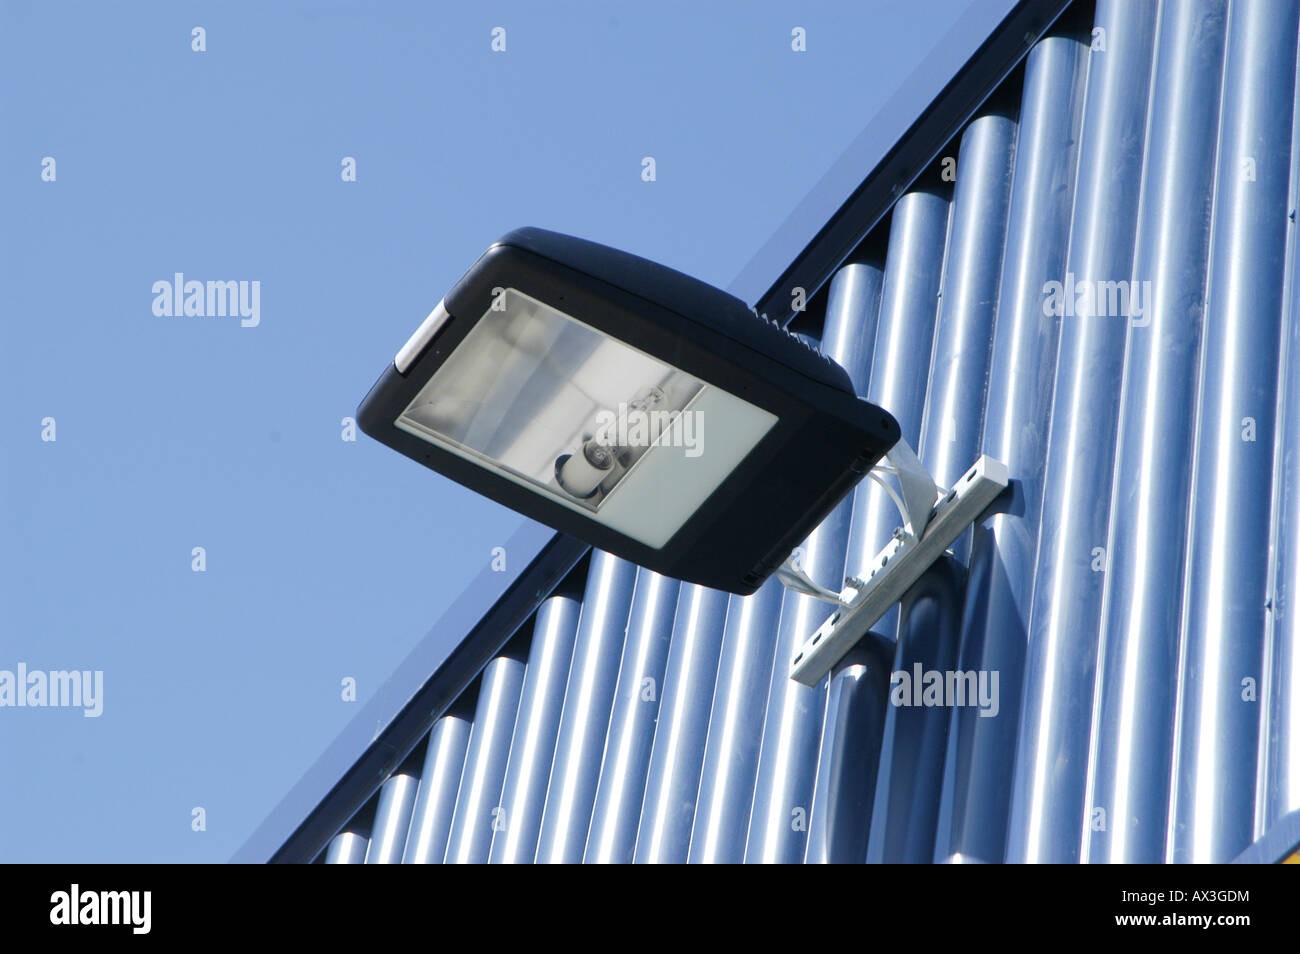 Security light on a commercial building in the uk stock photo security light on a commercial building in the uk aloadofball Choice Image